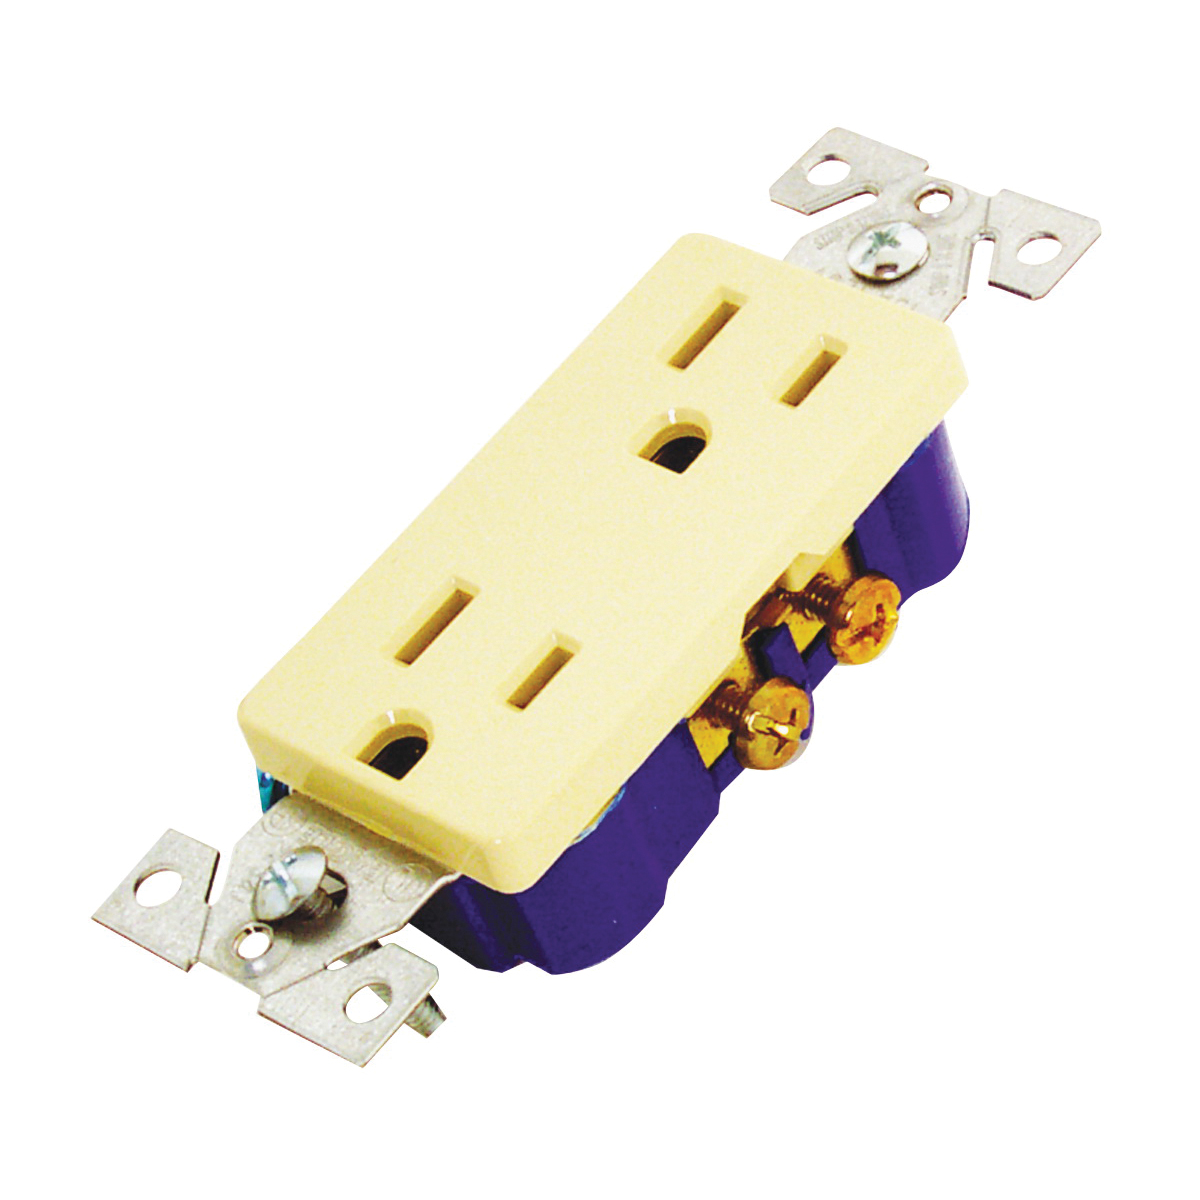 Picture of Eaton Wiring Devices 1107V-BOX Duplex Receptacle, 2-Pole, 15 A, 125 V, Back, Side Wiring, NEMA: 5-15R, Ivory